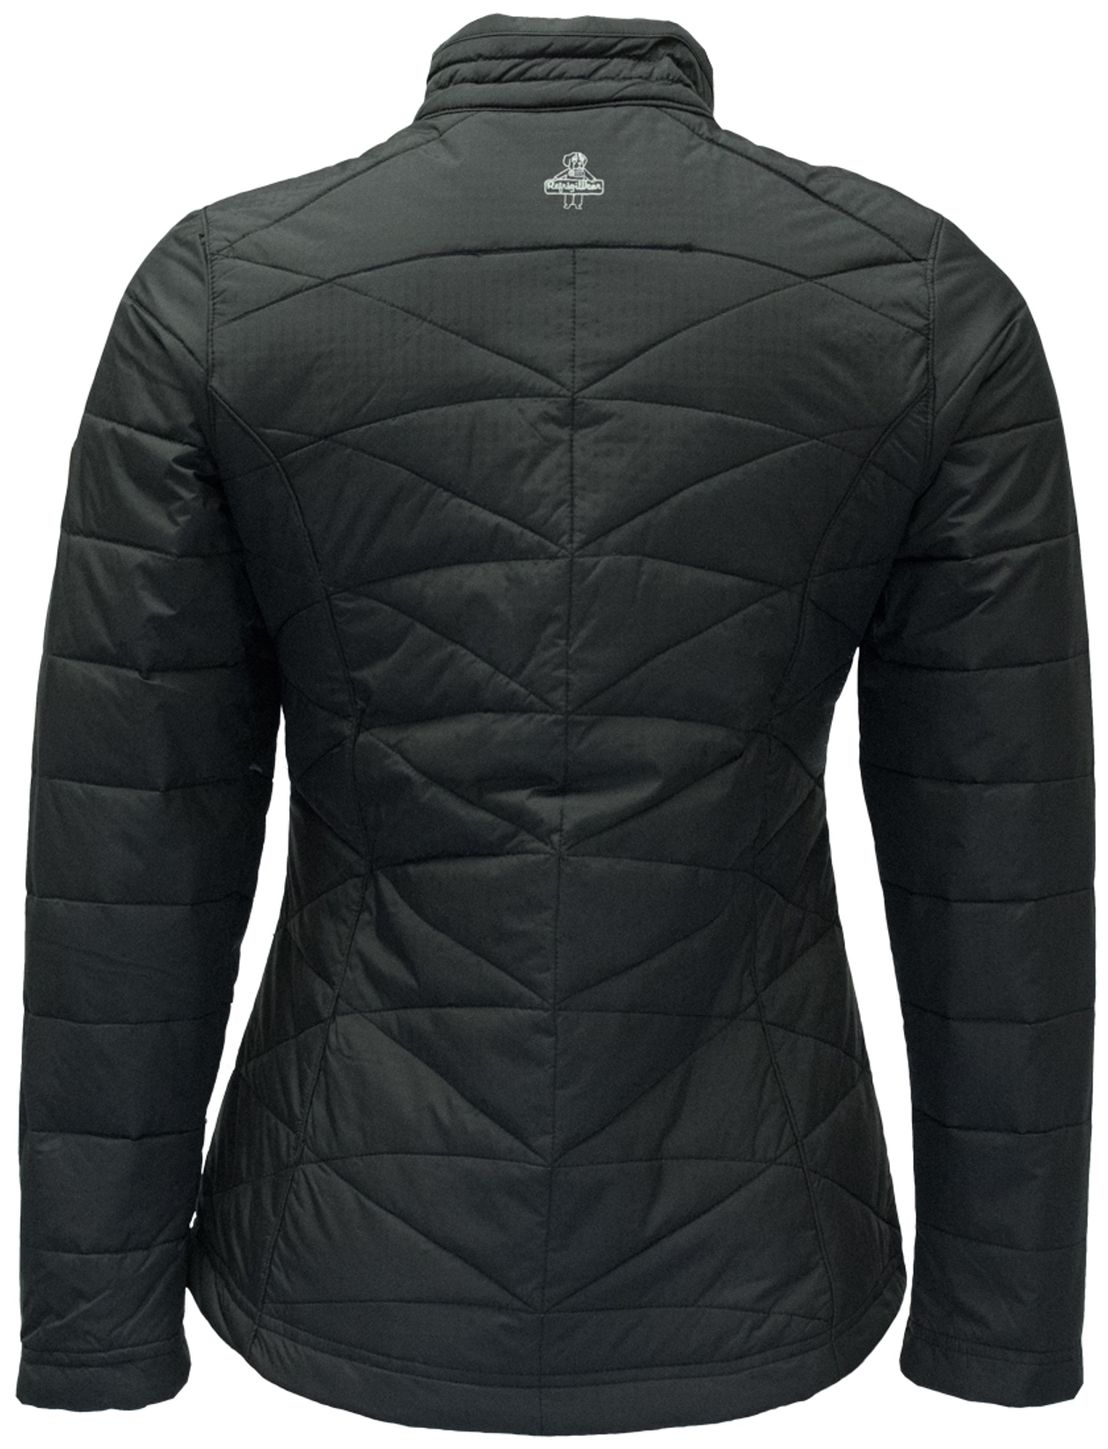 RefrigiWear 0423 Quilted Womens Insulated Work Jacket Back